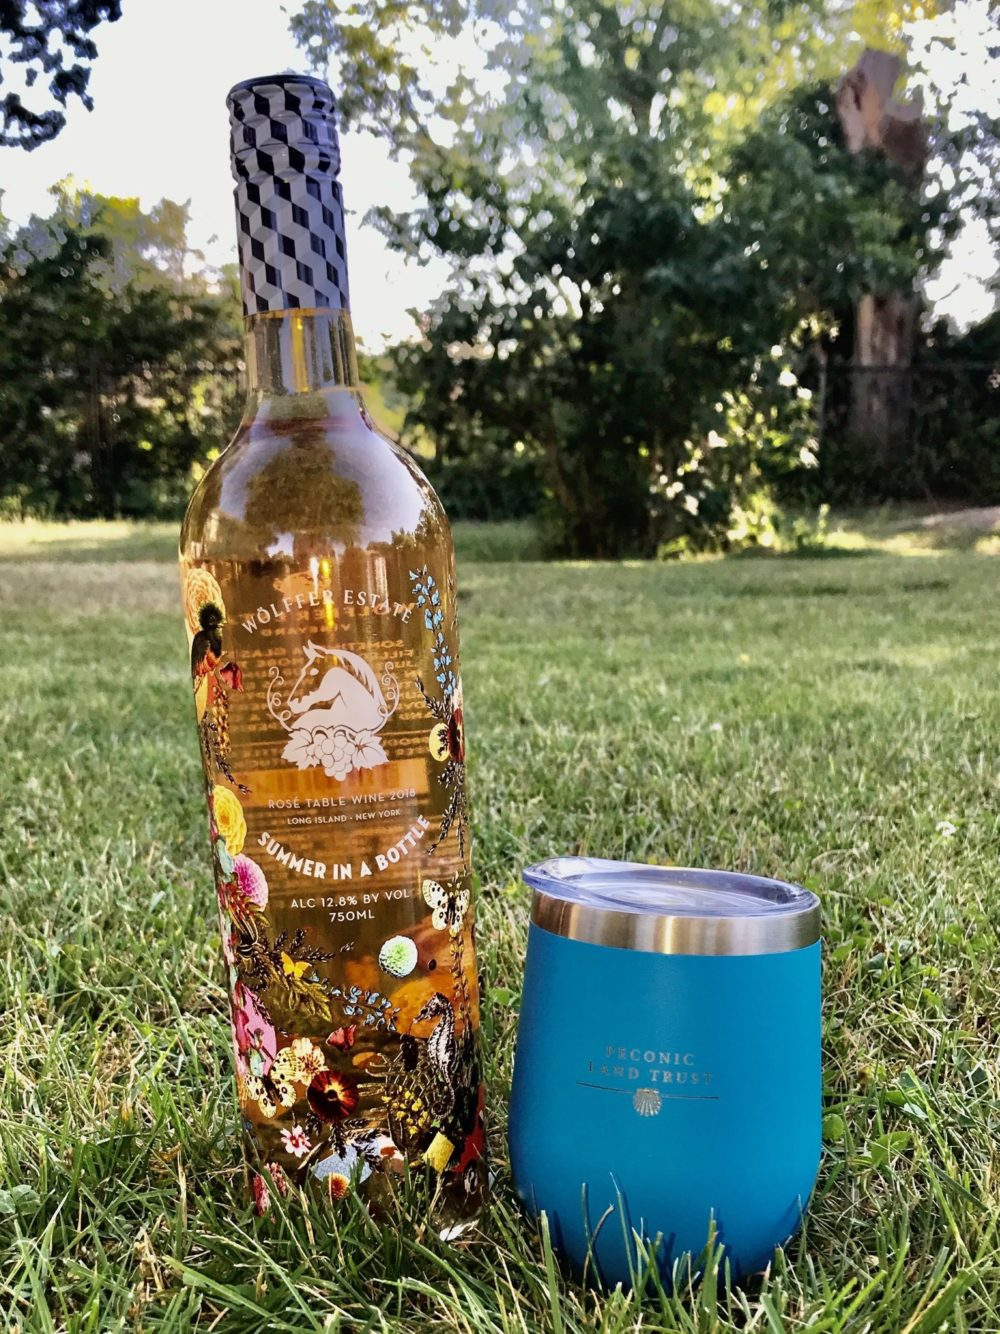 Wolffer Estate 'Summer in a Bottle' Rose next to a Peconic Land Trust Tumbler